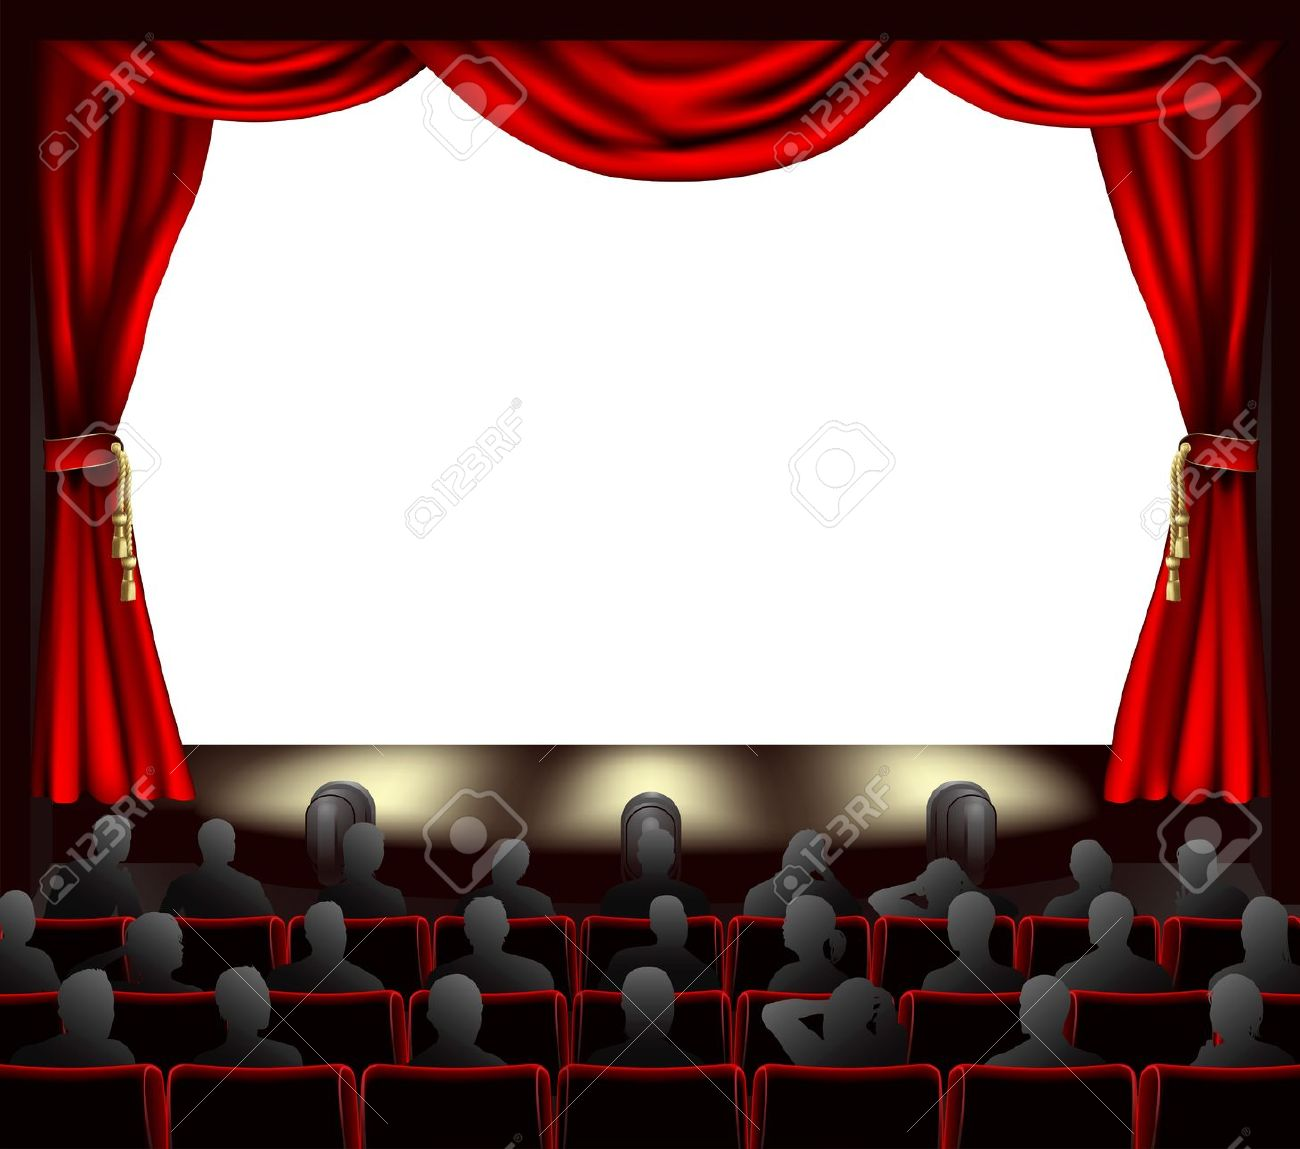 Audience Clip Art Free Clipart Panda Free Clipart Images